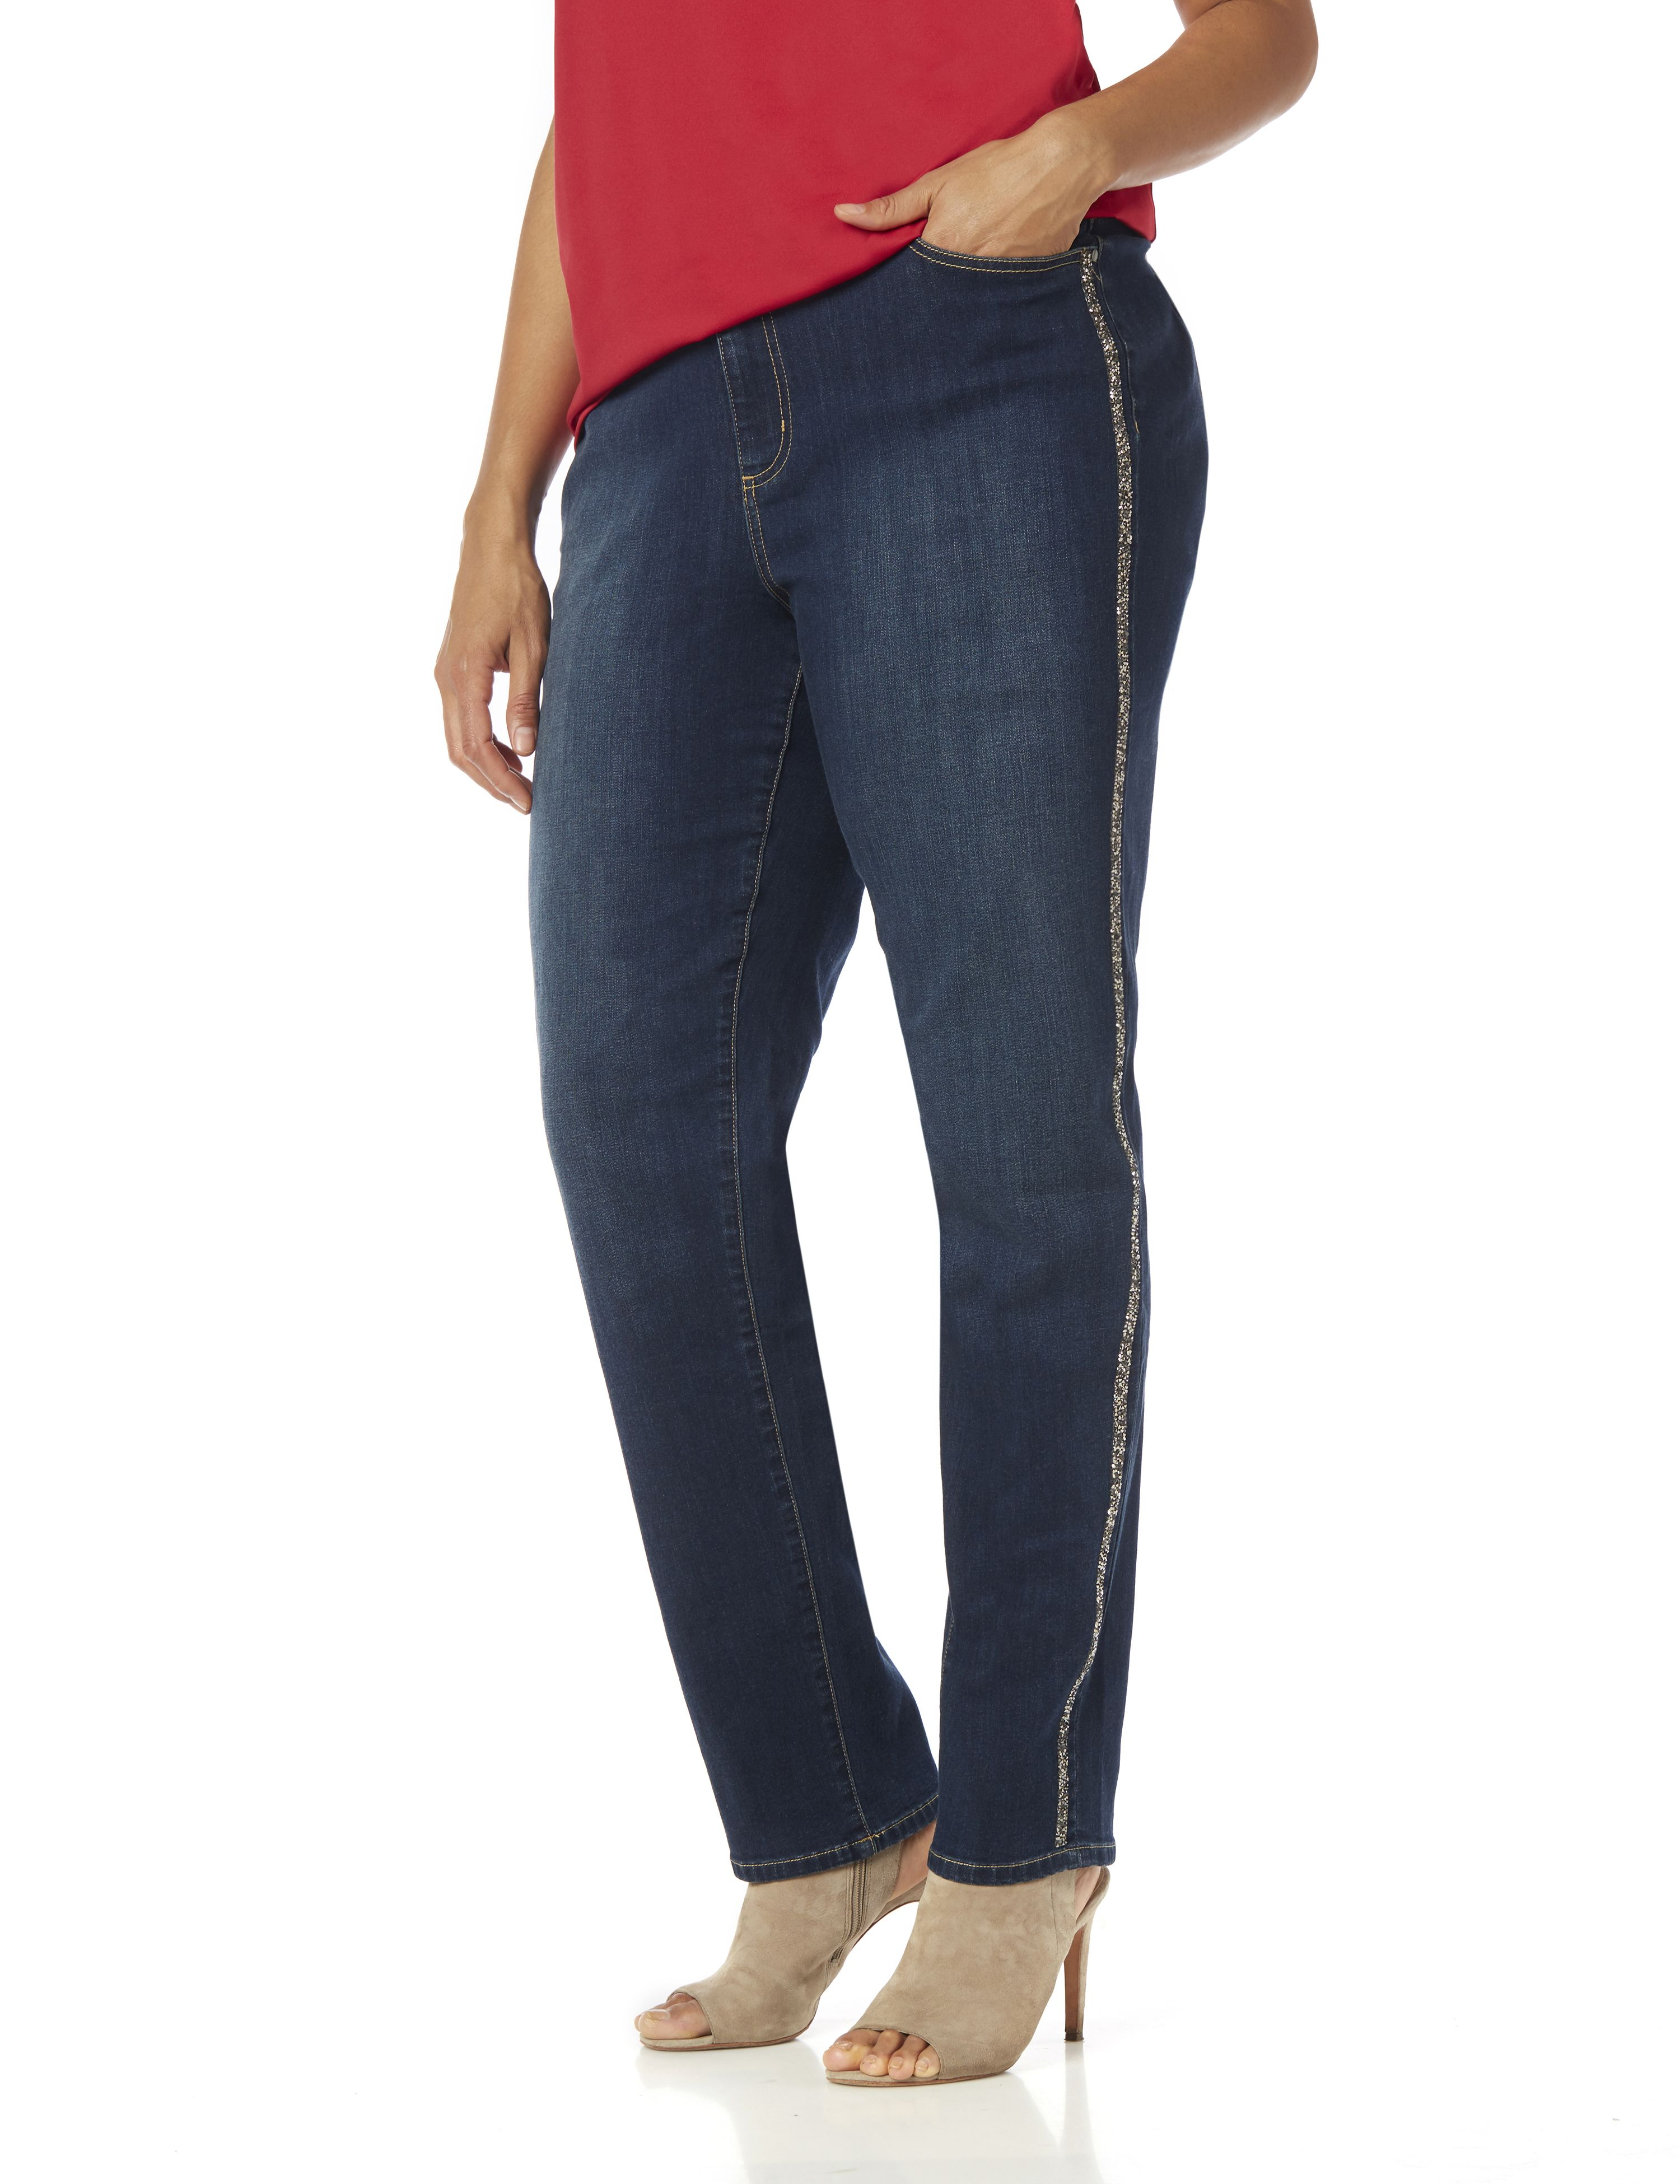 Sparkle Stripe Jean 1084761 Side Seam Taping - 29